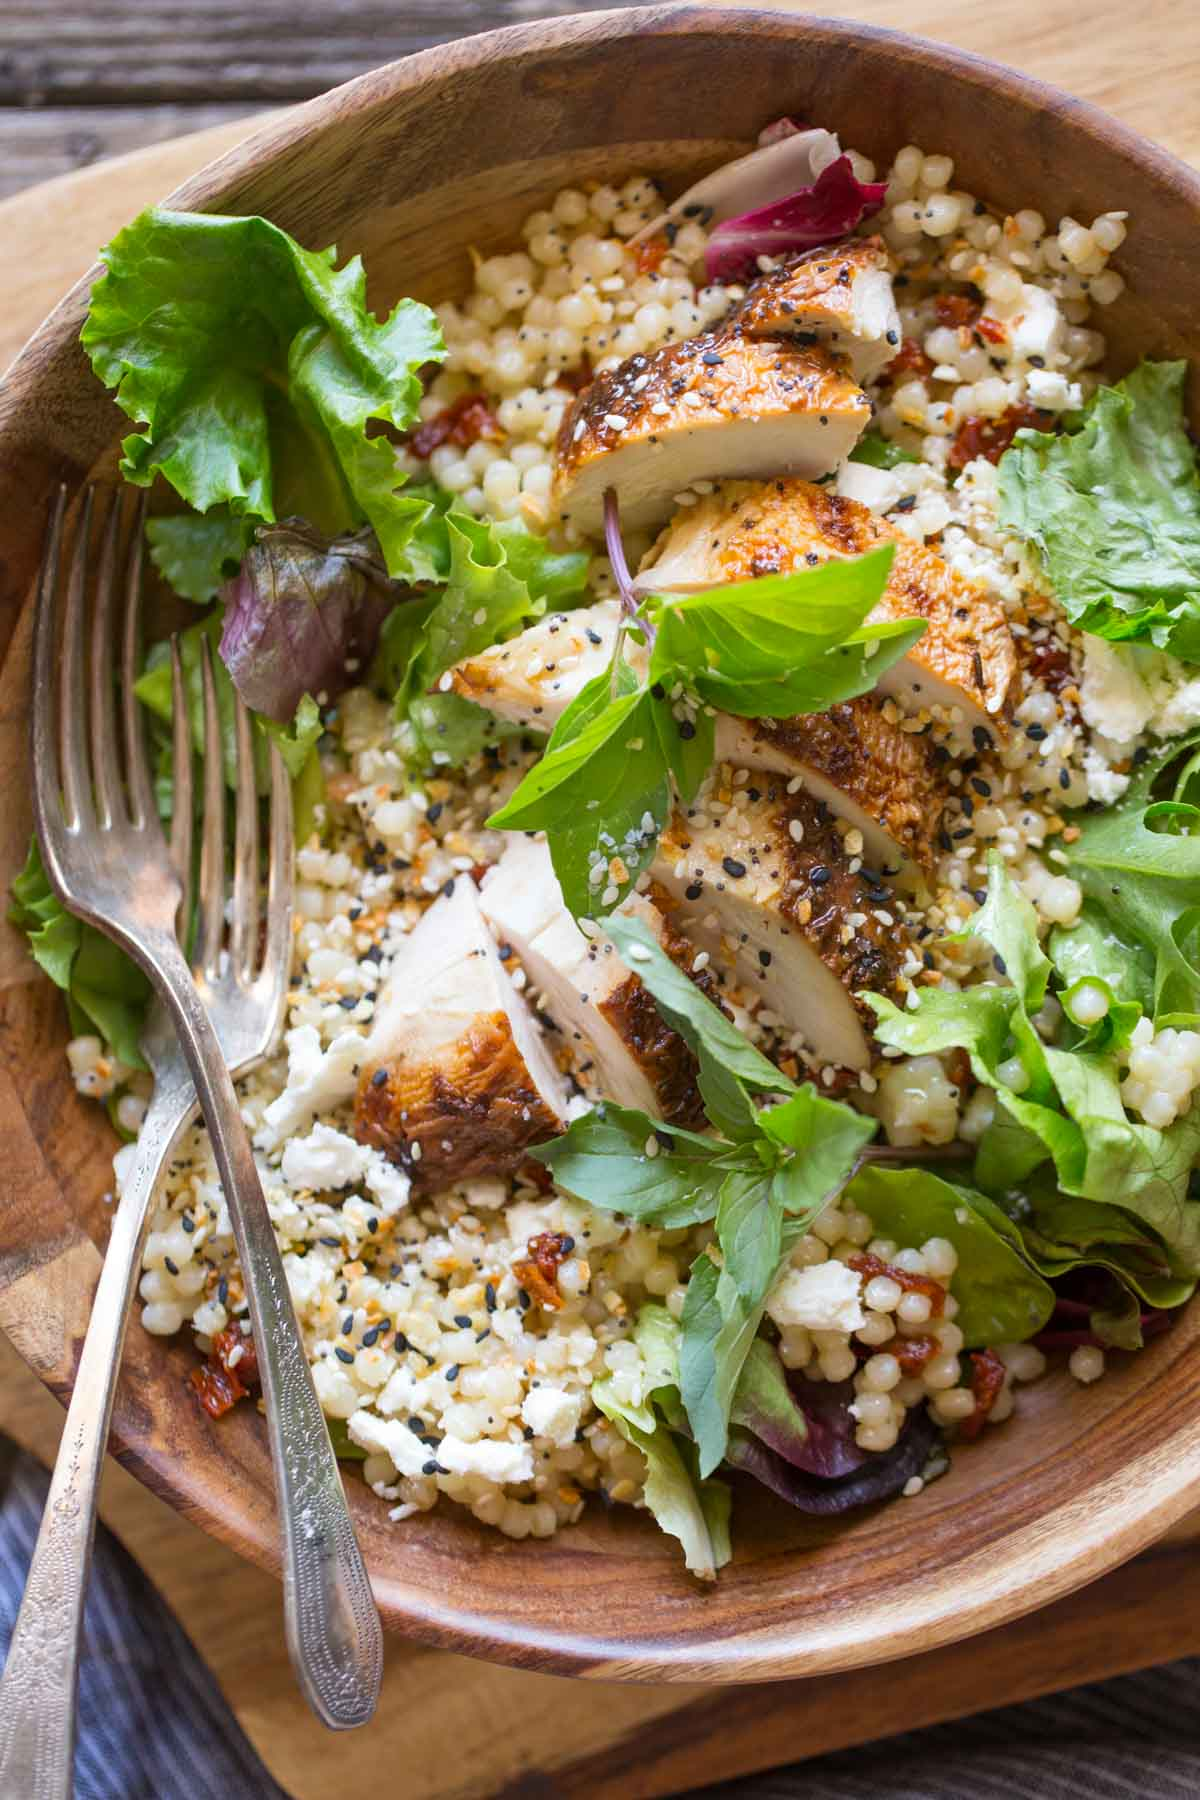 Israeli Couscous Salad with Honey Lemon Vinaigrette in a wooden bowl on a wooden cutting board.